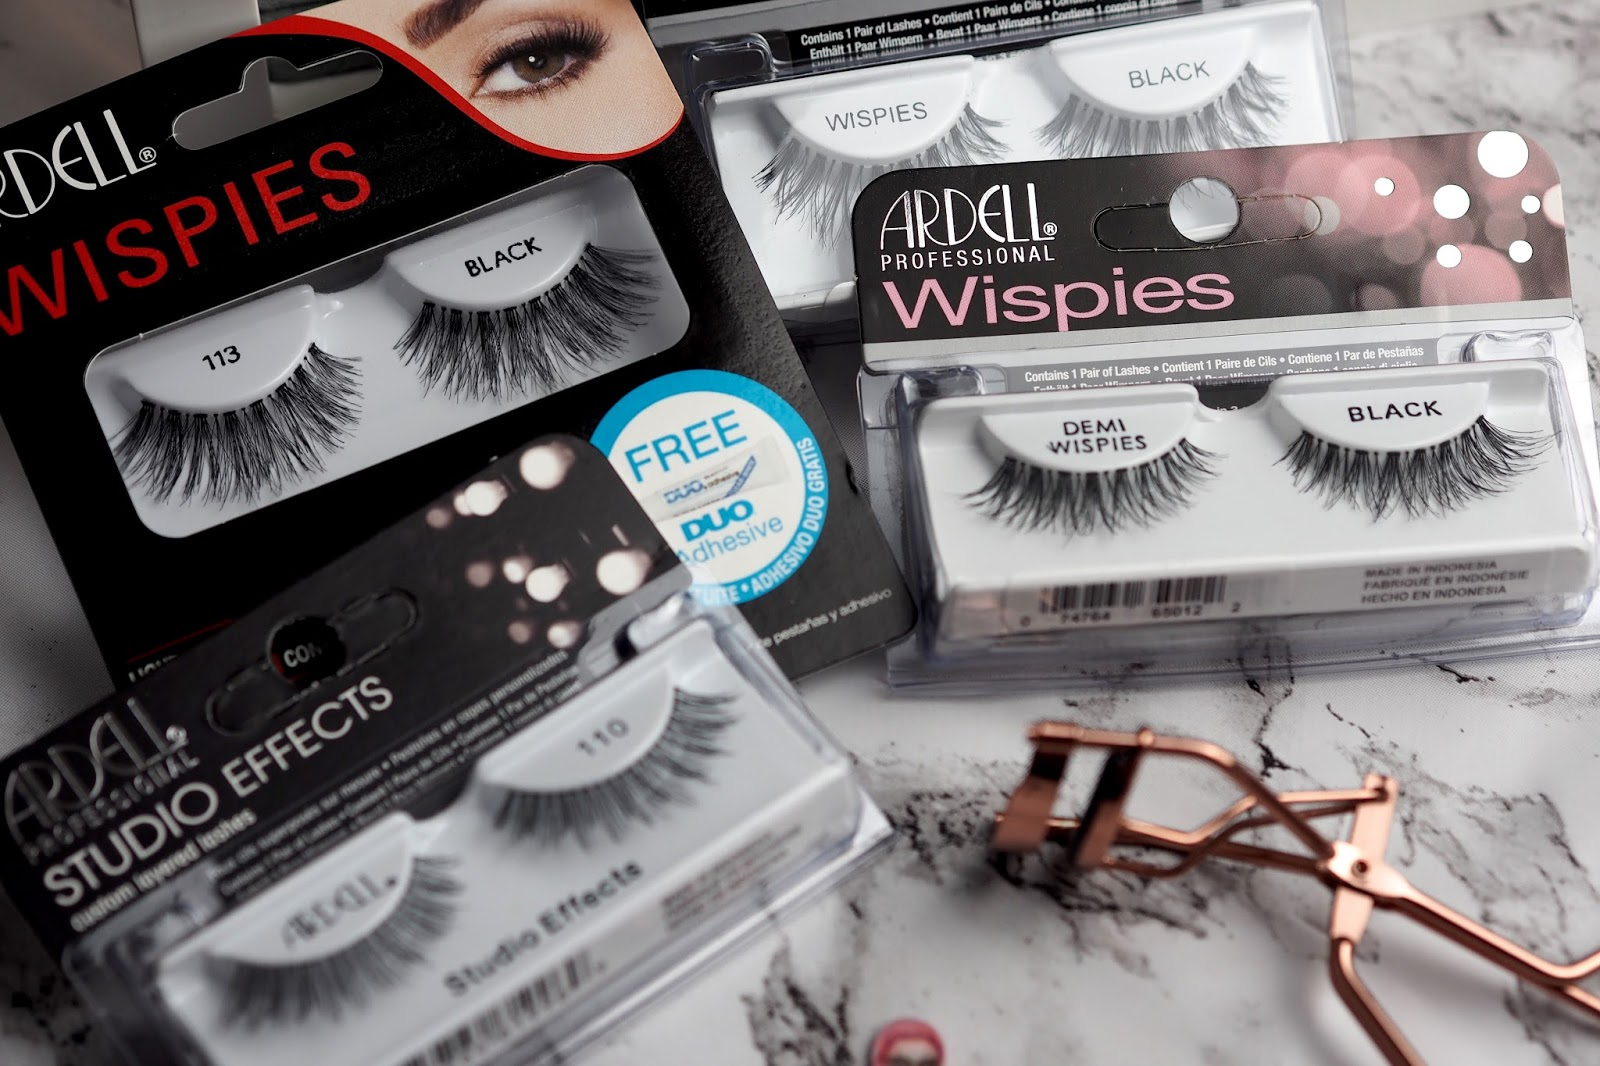 1defa8e383b Ardell lashes vary in price starting from as little as £3.49 and going up  to around £13.99 and you can buy them from FalseLashes.co.uk